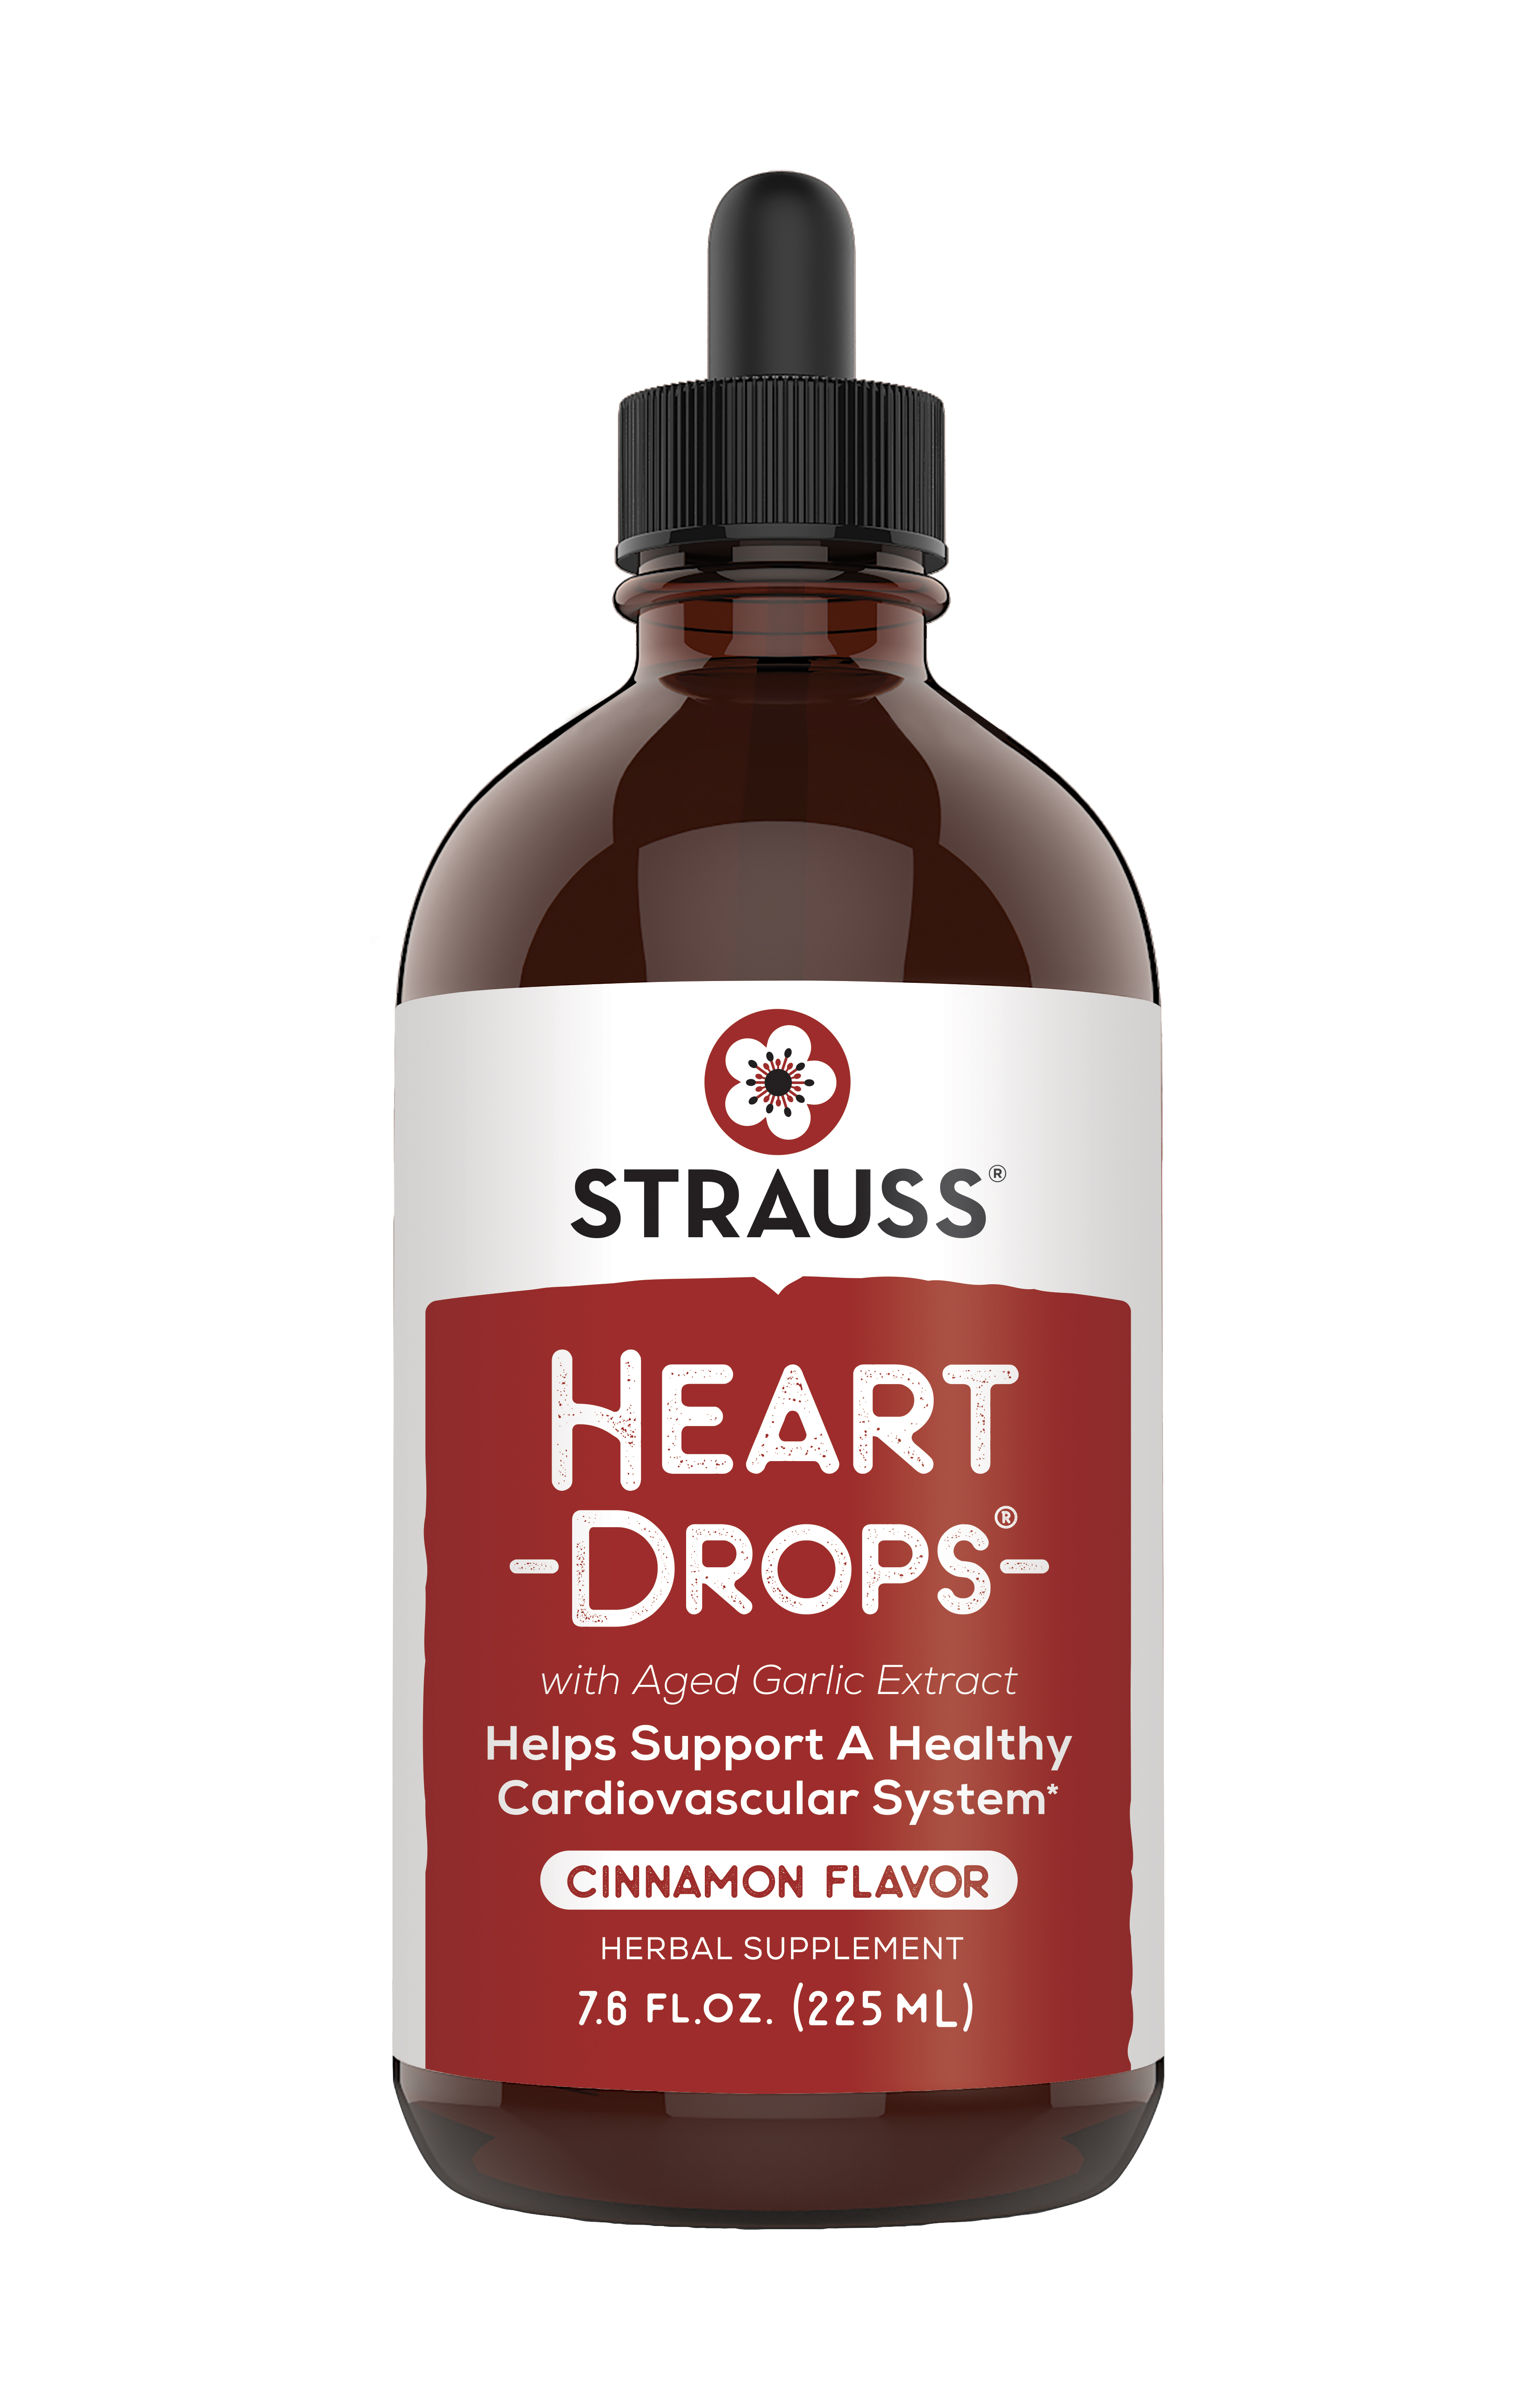 Strauss Heartdrops - 7.6 fl oz - CINNAMON